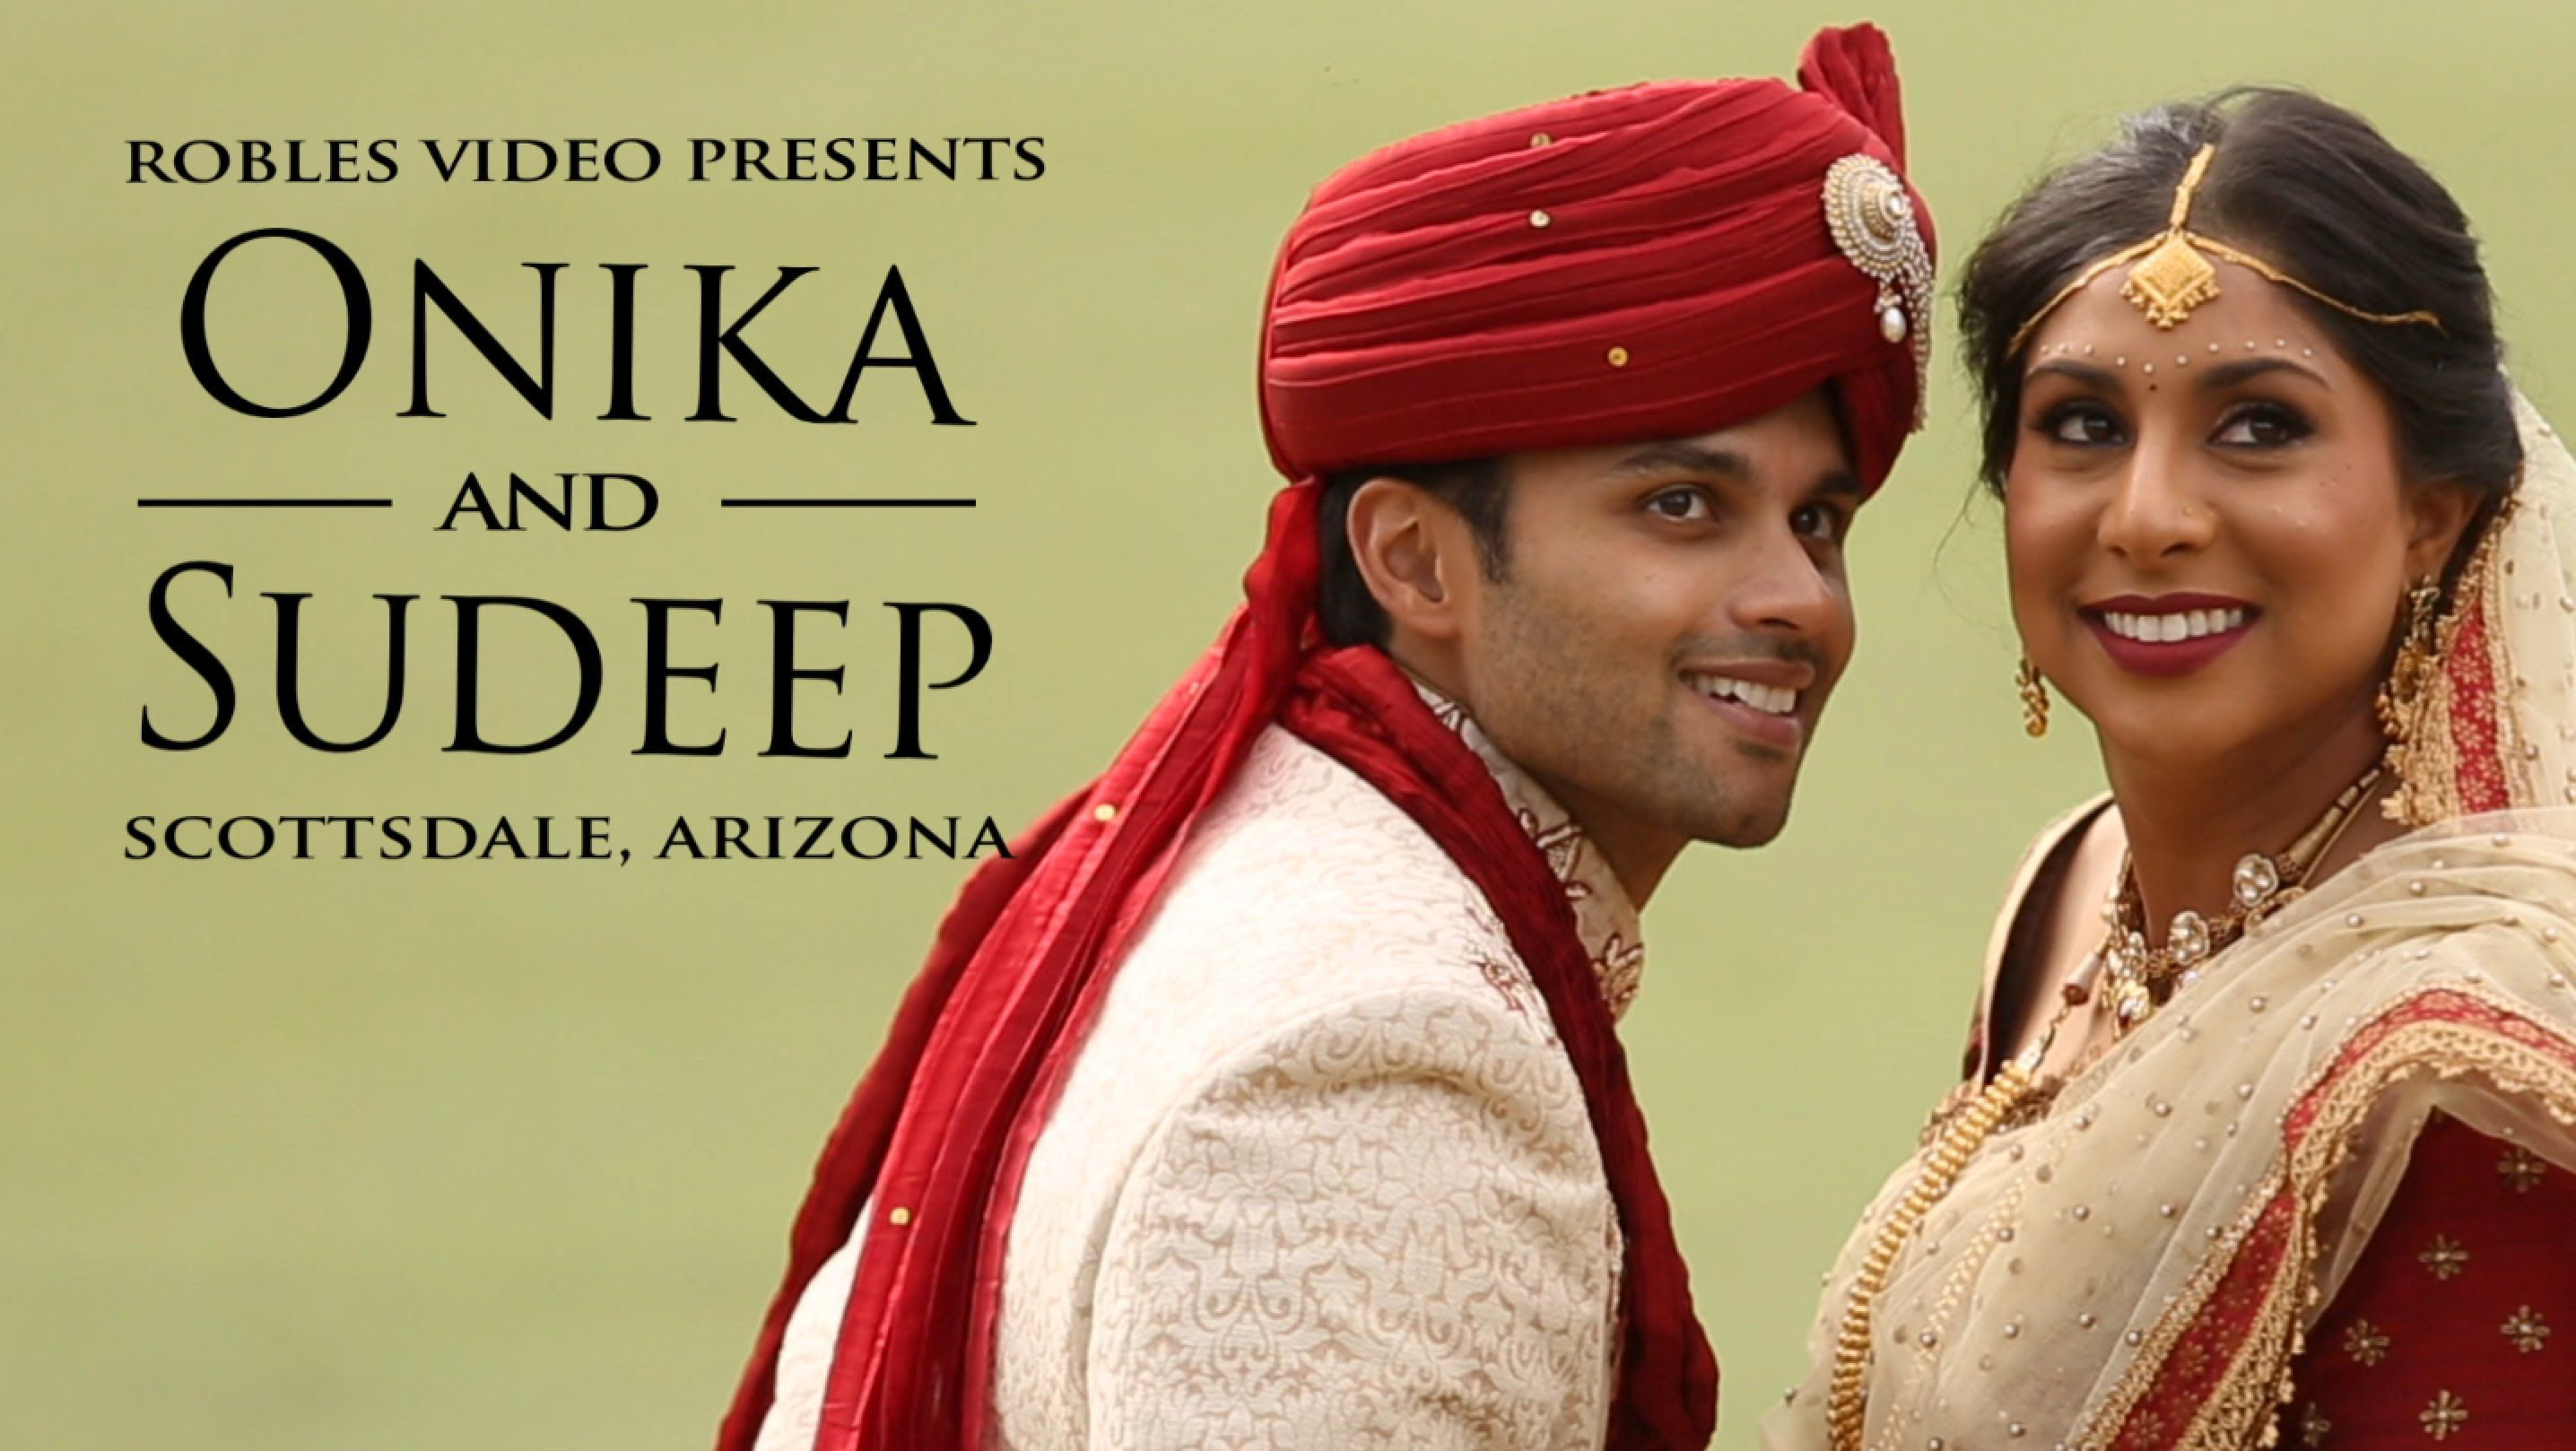 Onika and Sudeep #SJSevents #sjseventsweddings #sjseventsvideos